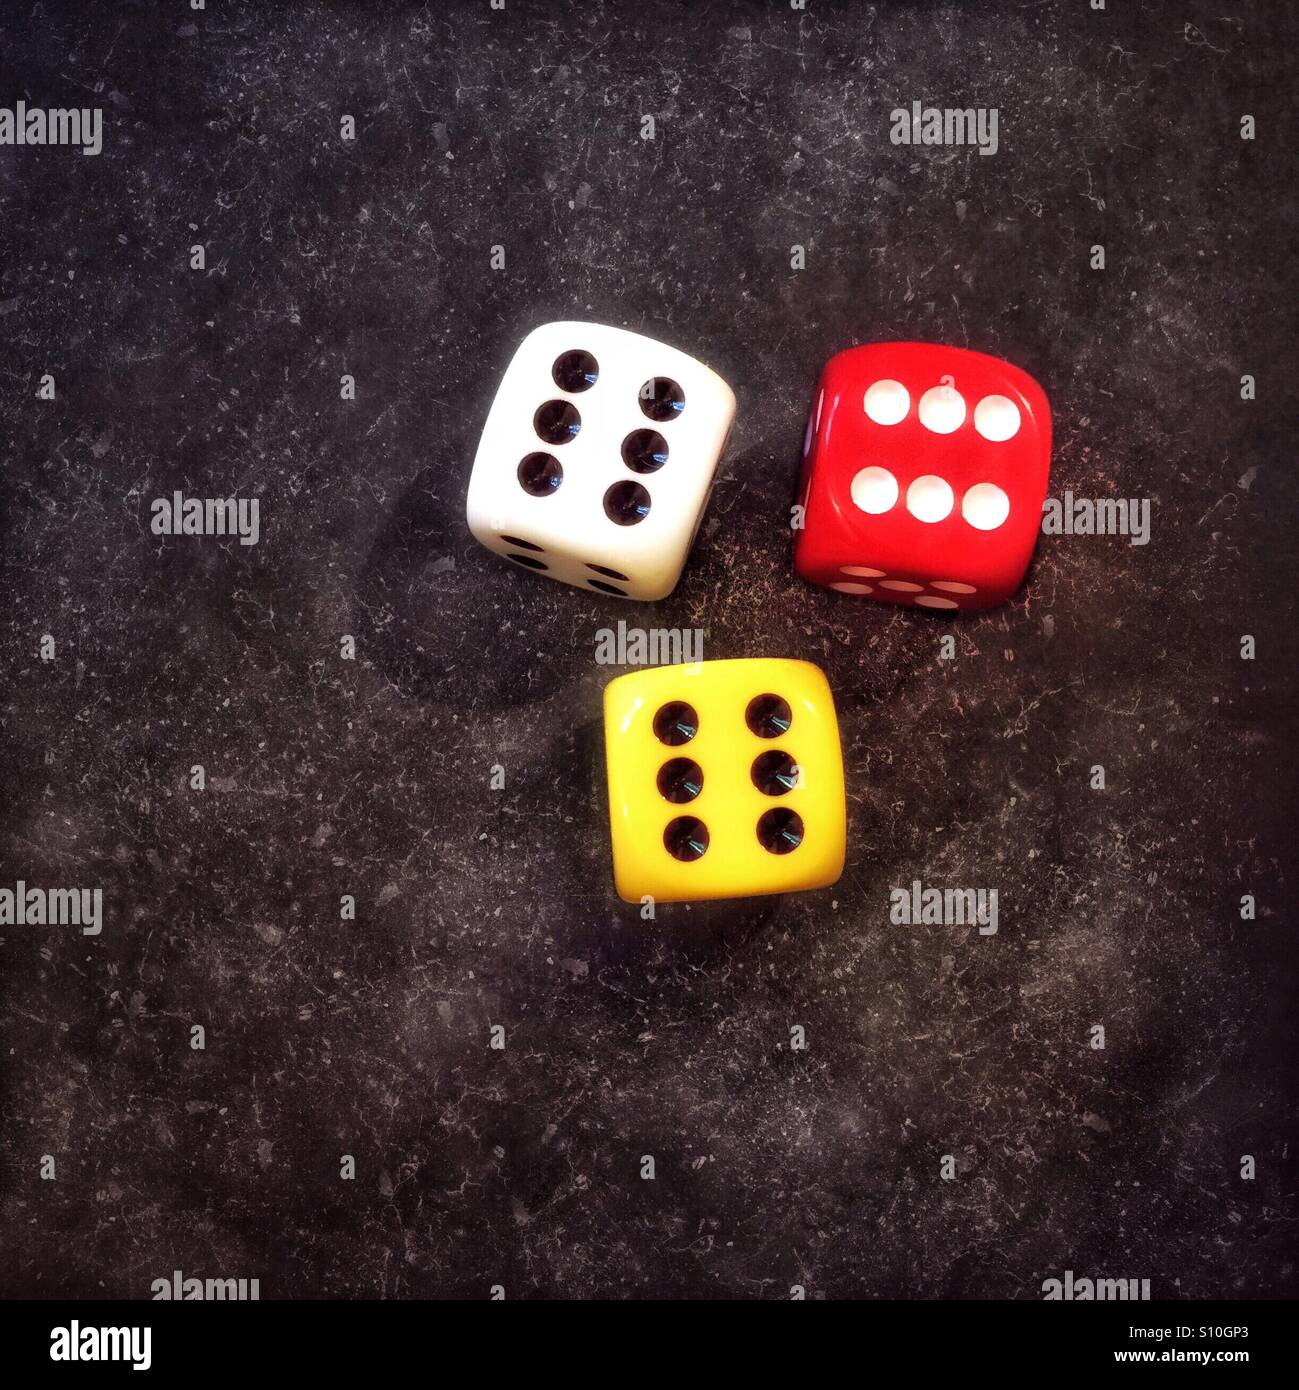 Three lucky dices - Stock Image